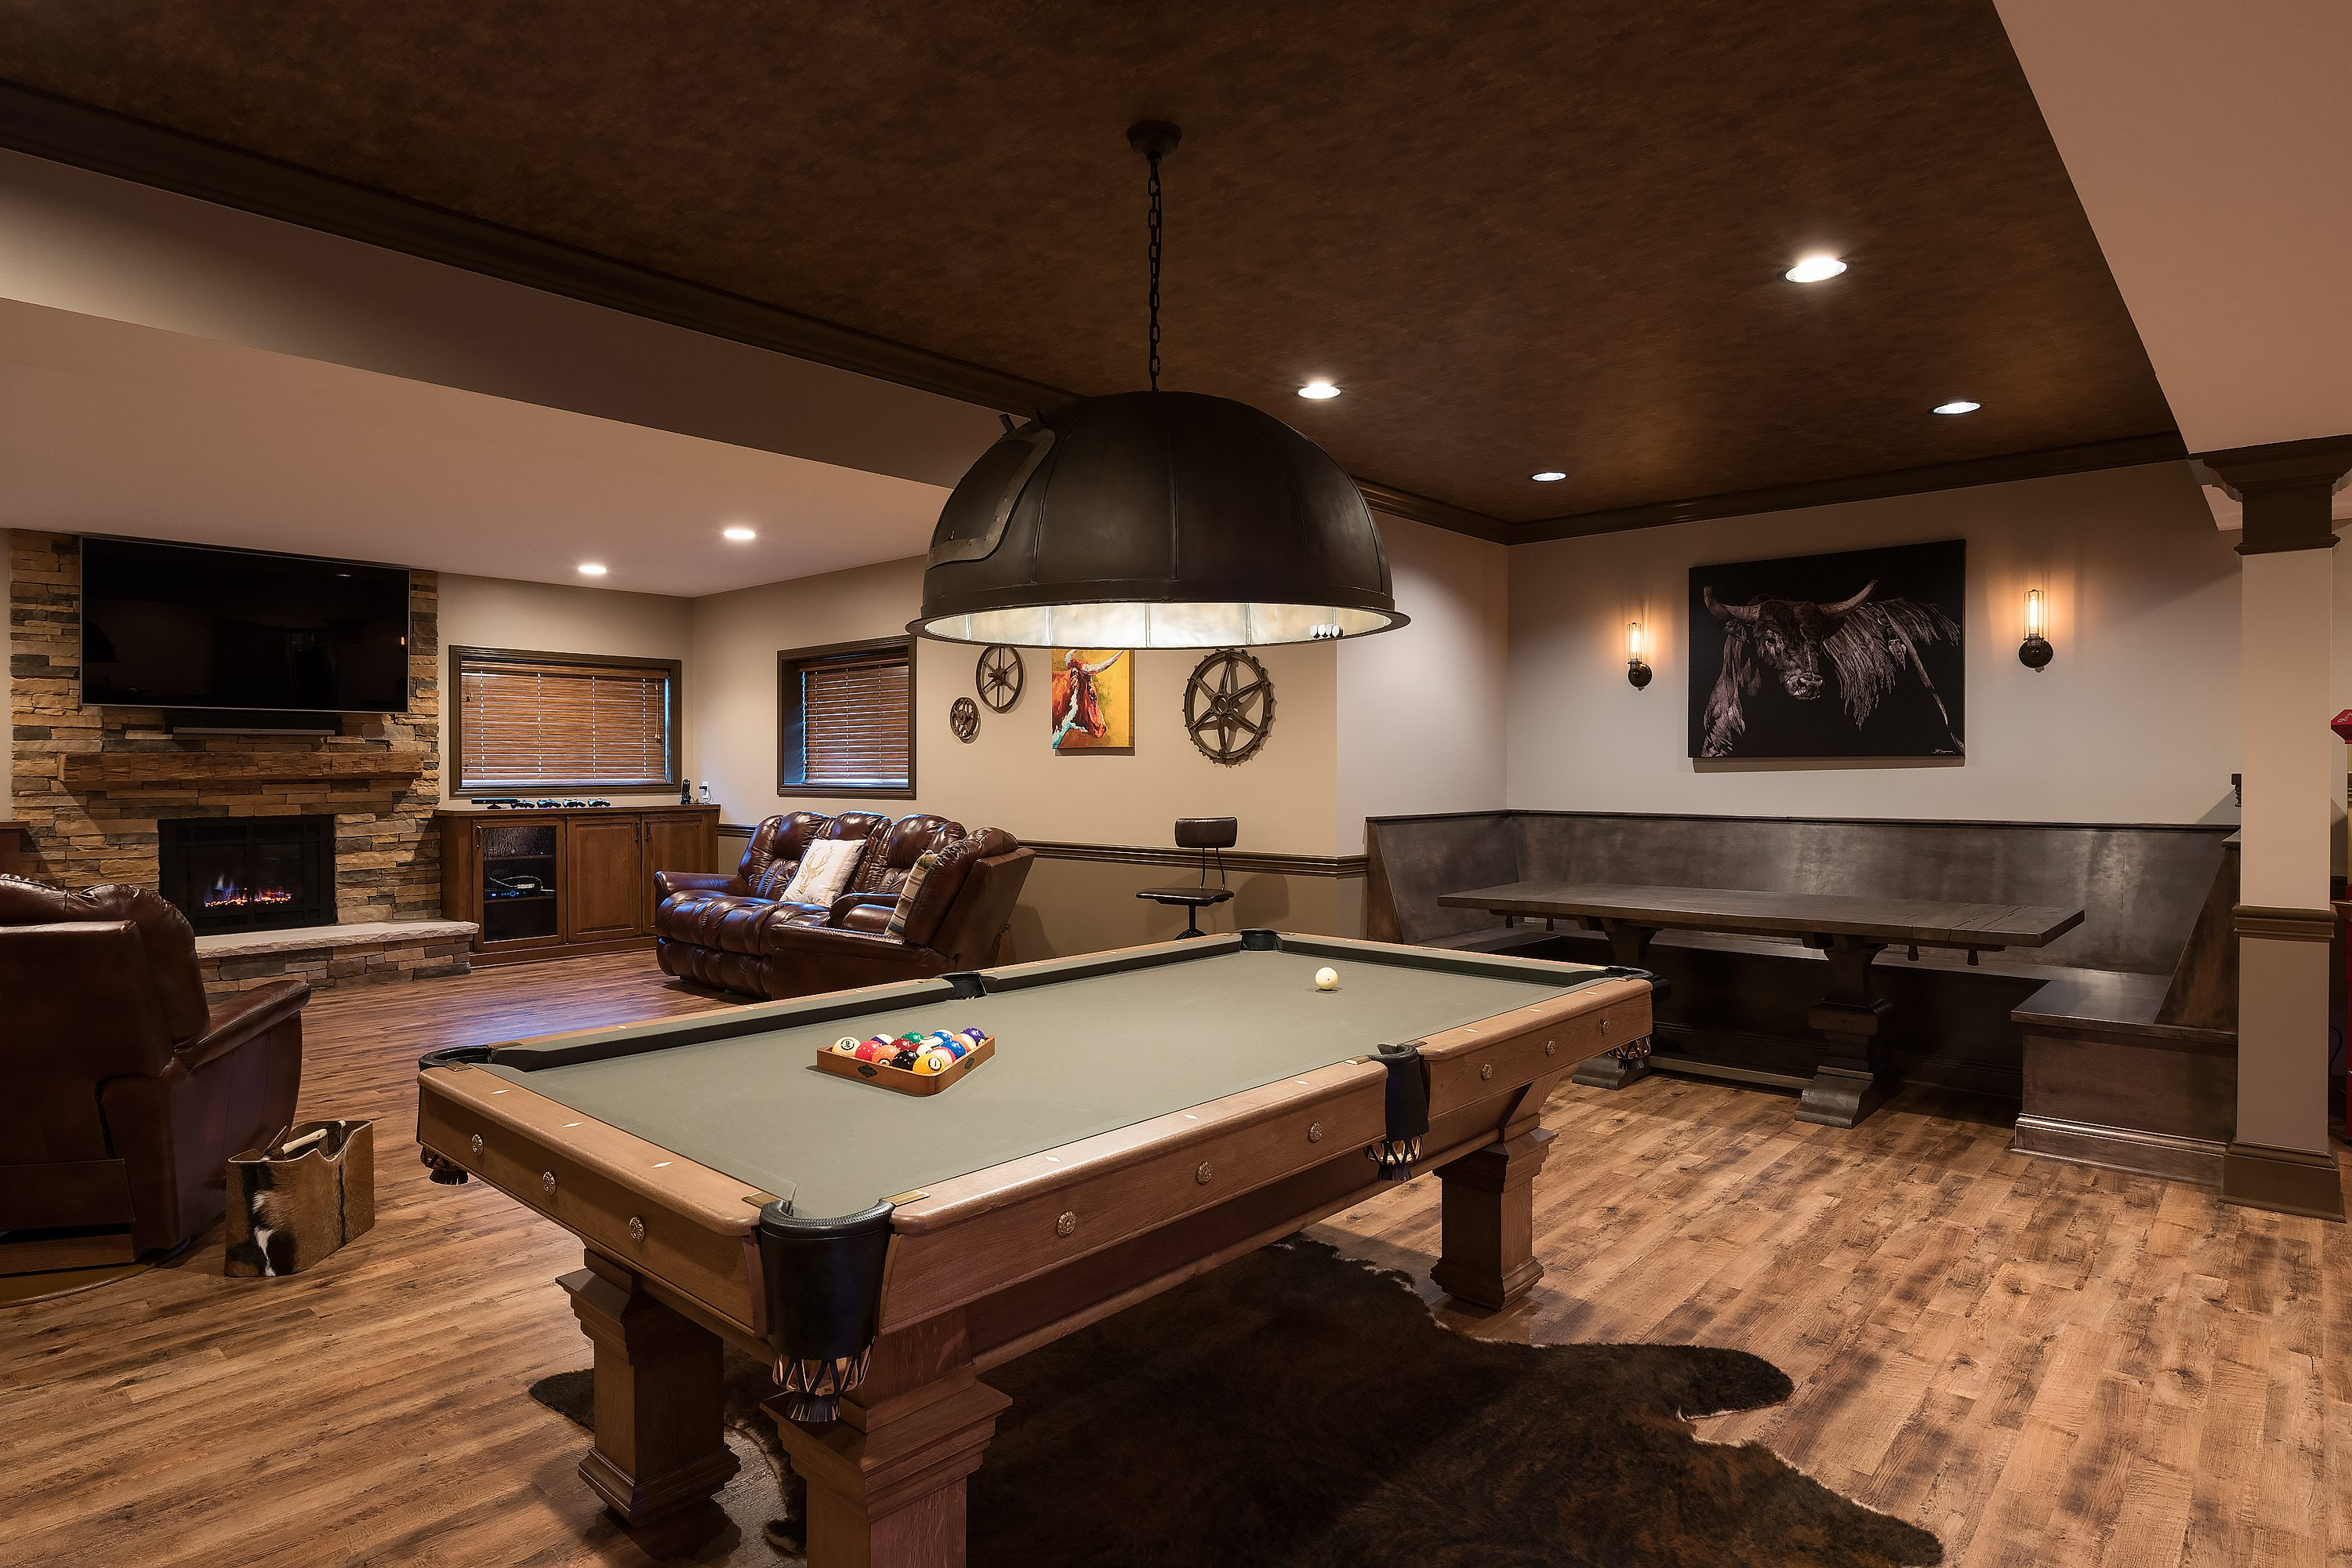 MagazineWorthy Basement W Western Finesse Case Indy - Western pool table